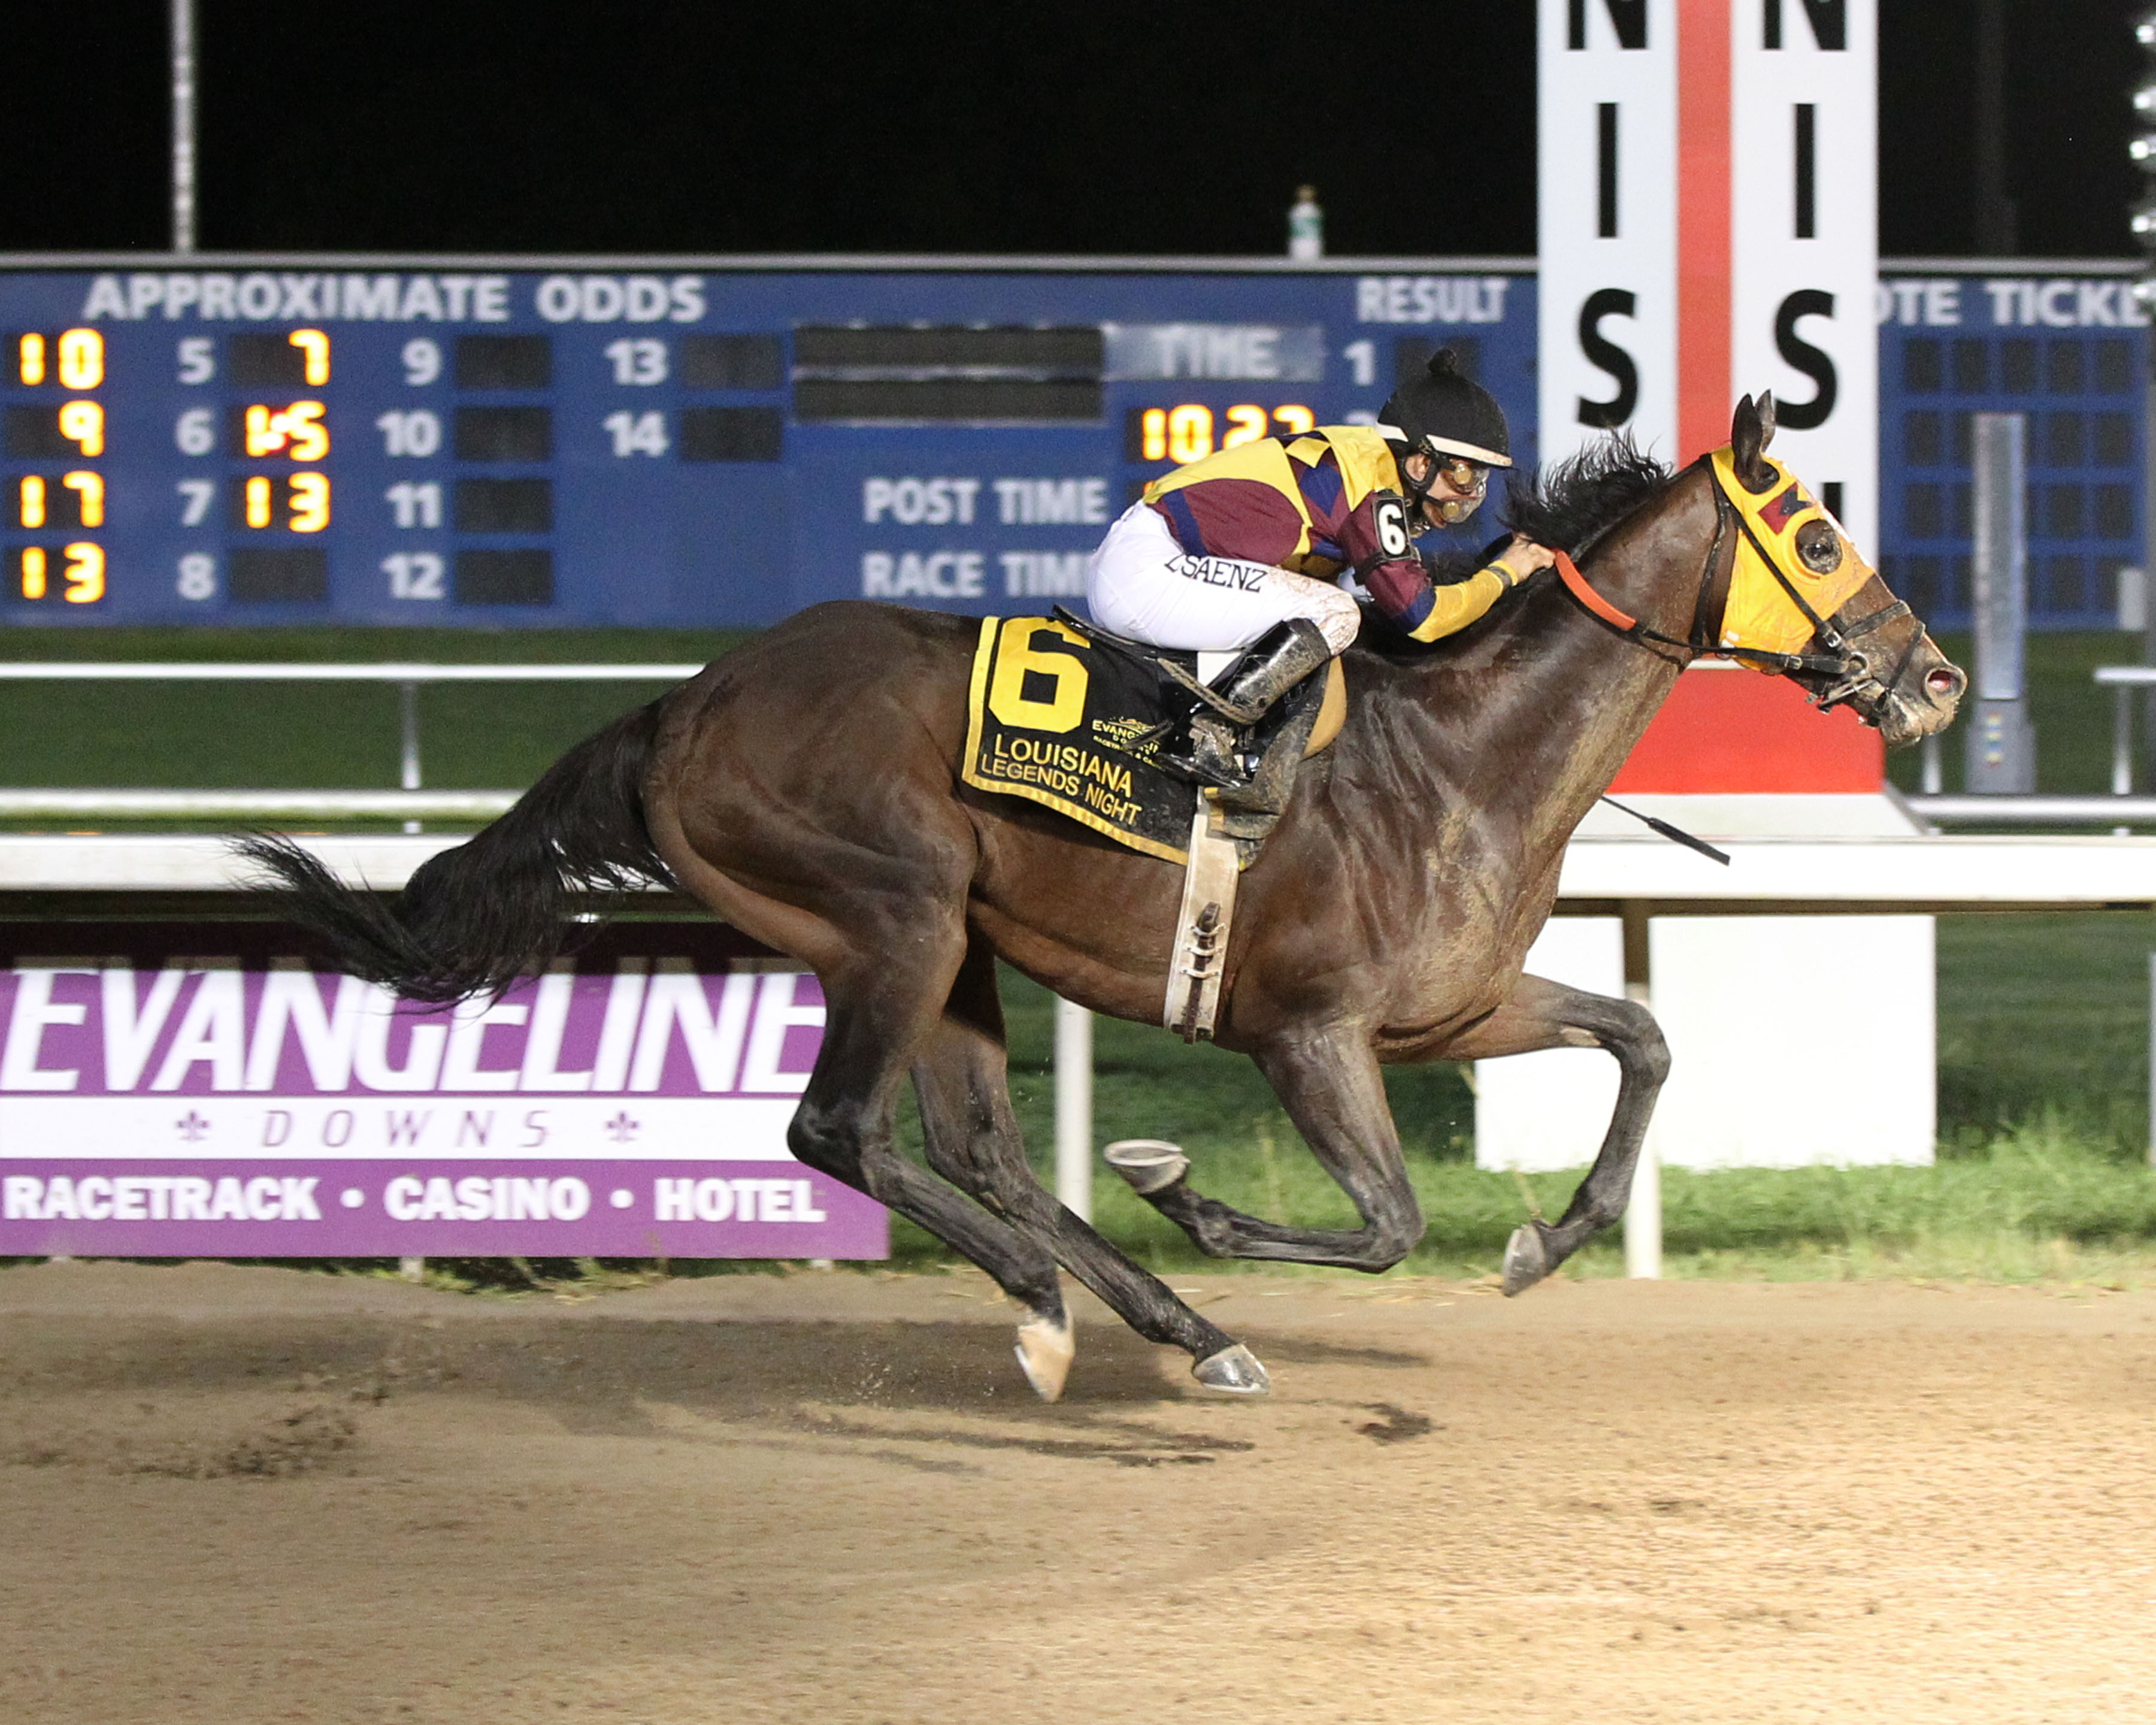 Stormdriver - Louisiana Legends Classic Stakes - Honoring Pola Benoit - 07-04-15 - R11 - EVD - Finish